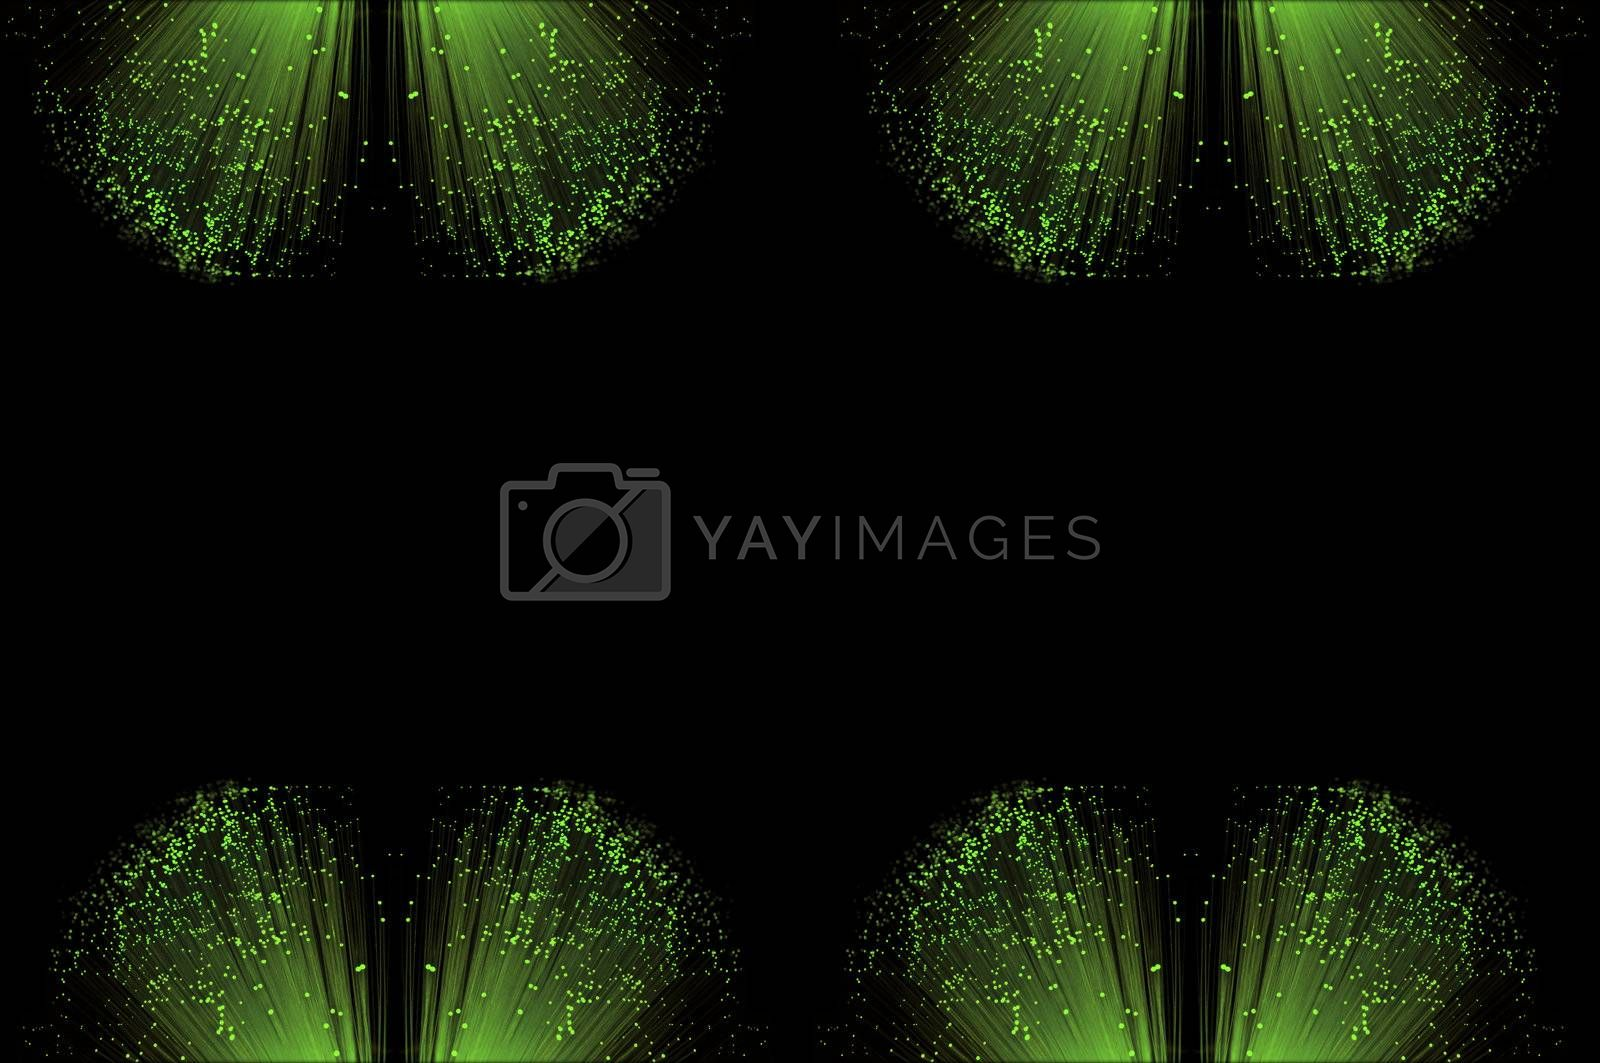 Eight small groups of illuminated fiber optic light strands arranged along the top and bottom border of the image with black background.